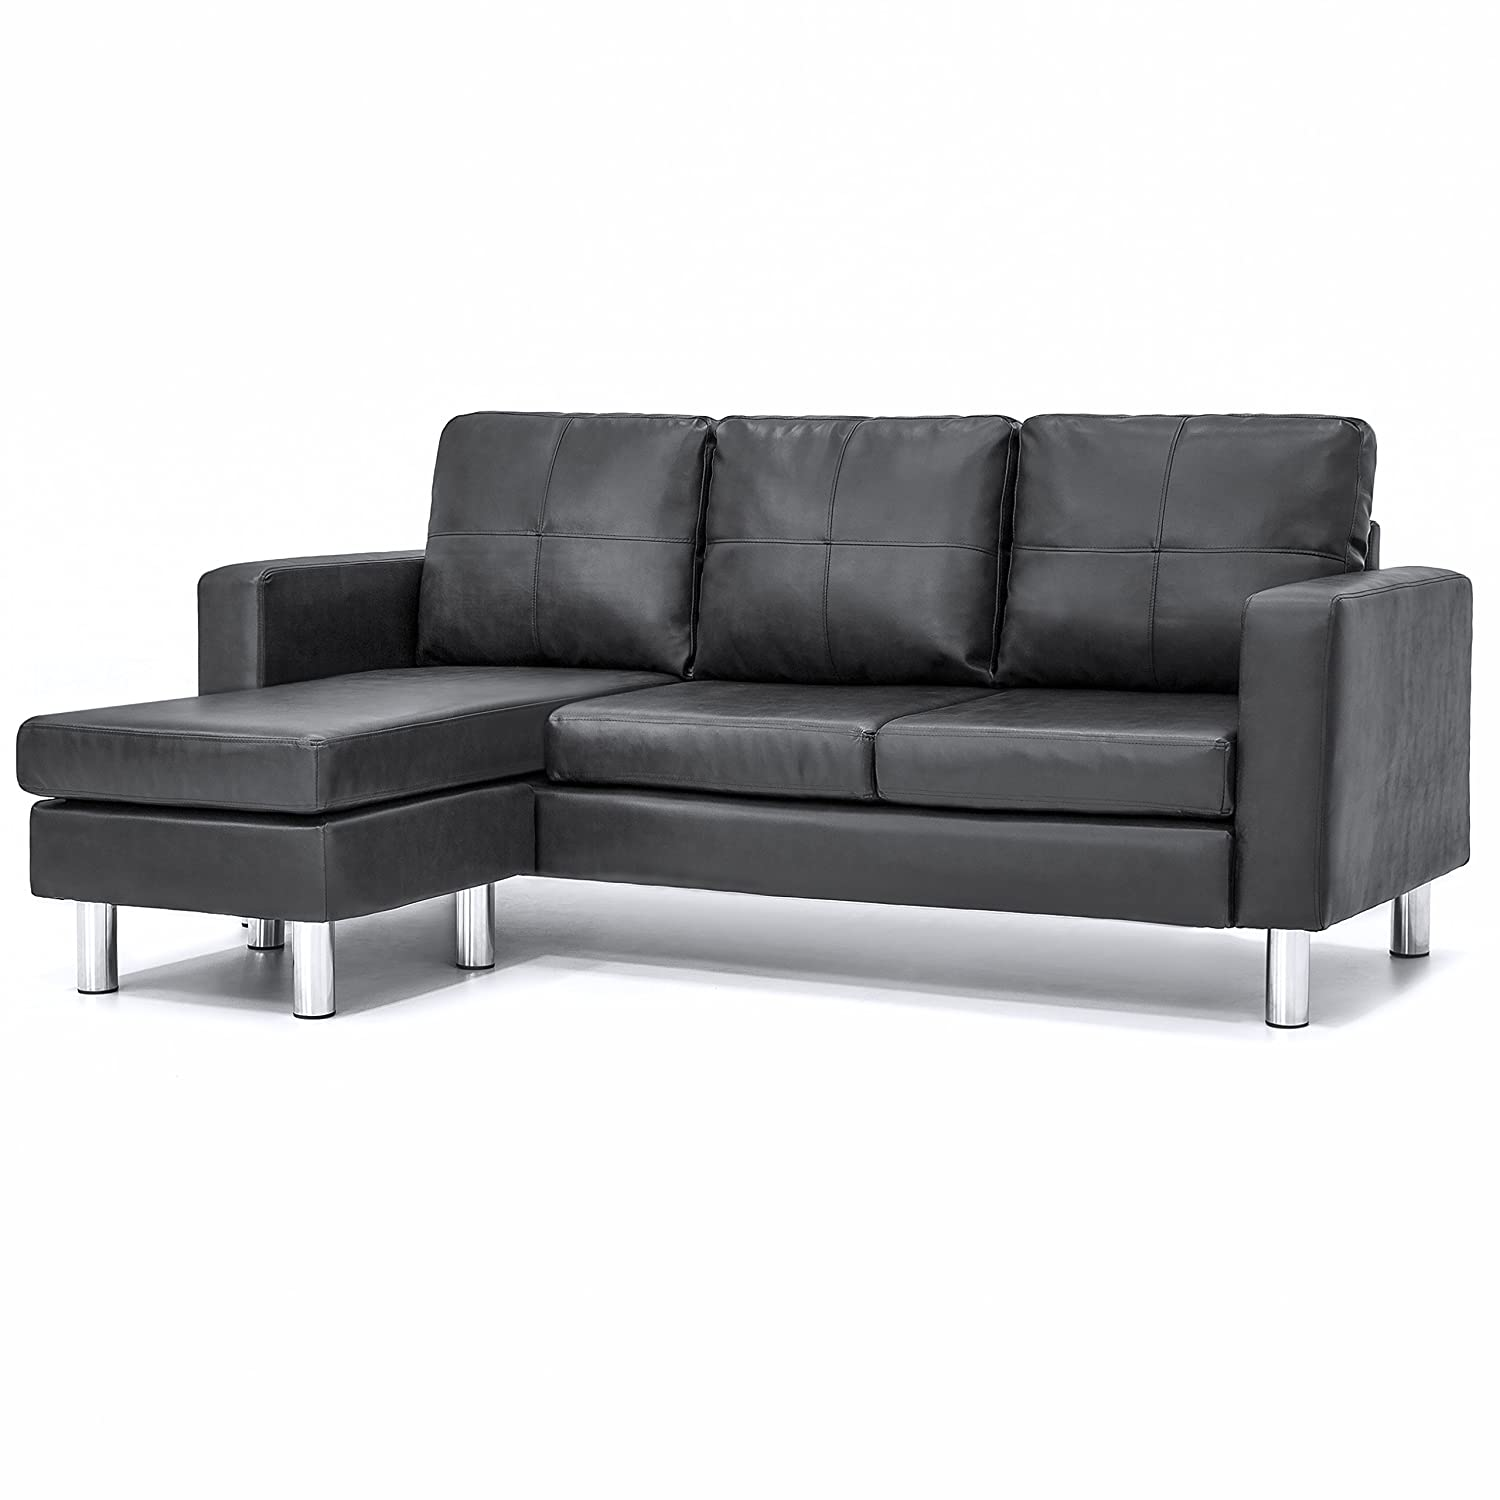 Charming U Shaped Sectional Sofa Leather L Couch Shape Sale ...